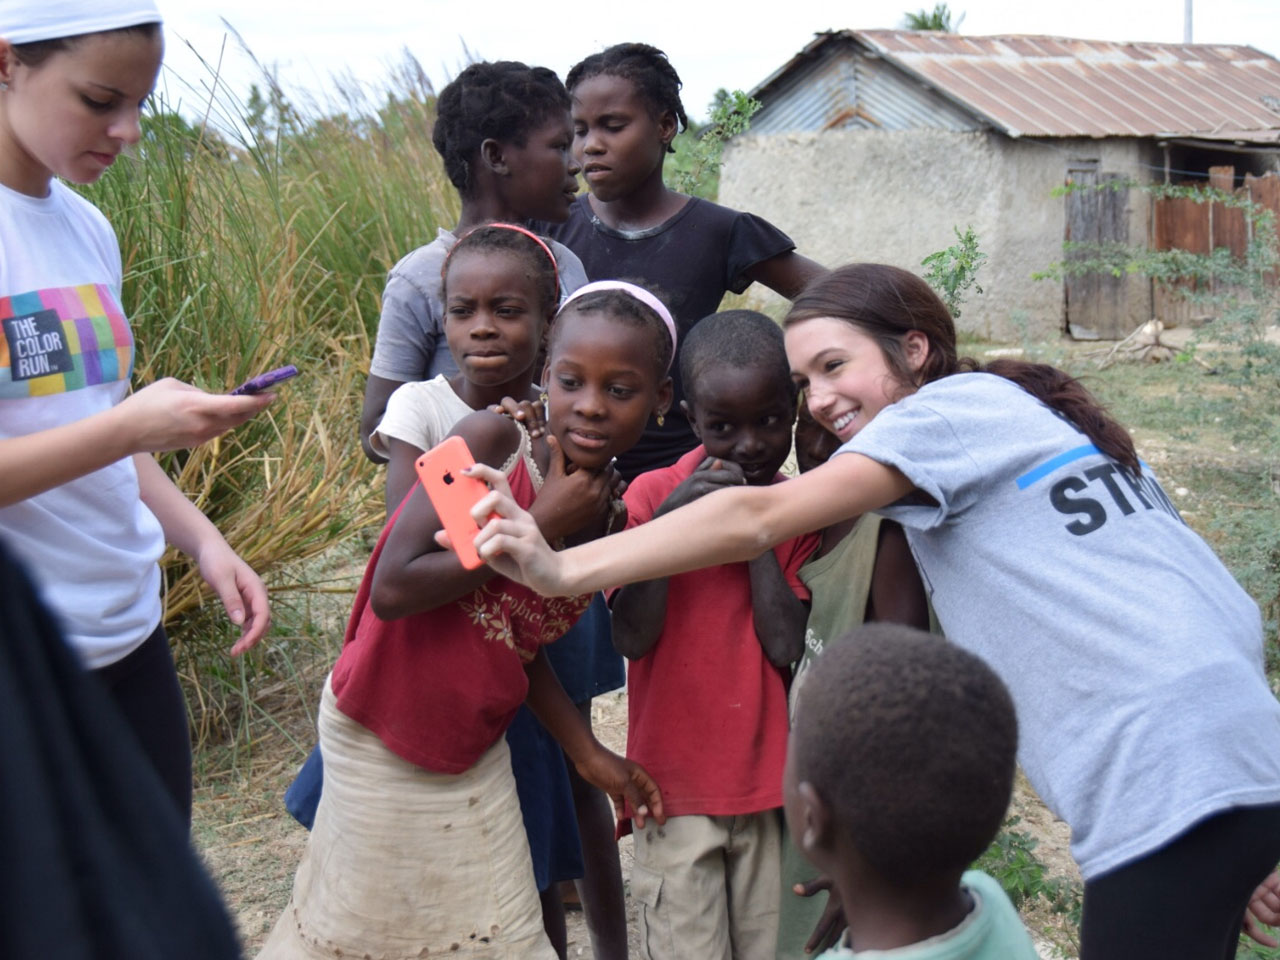 SUNY Broome female student poses for selfie with Haitian children in Haiti.